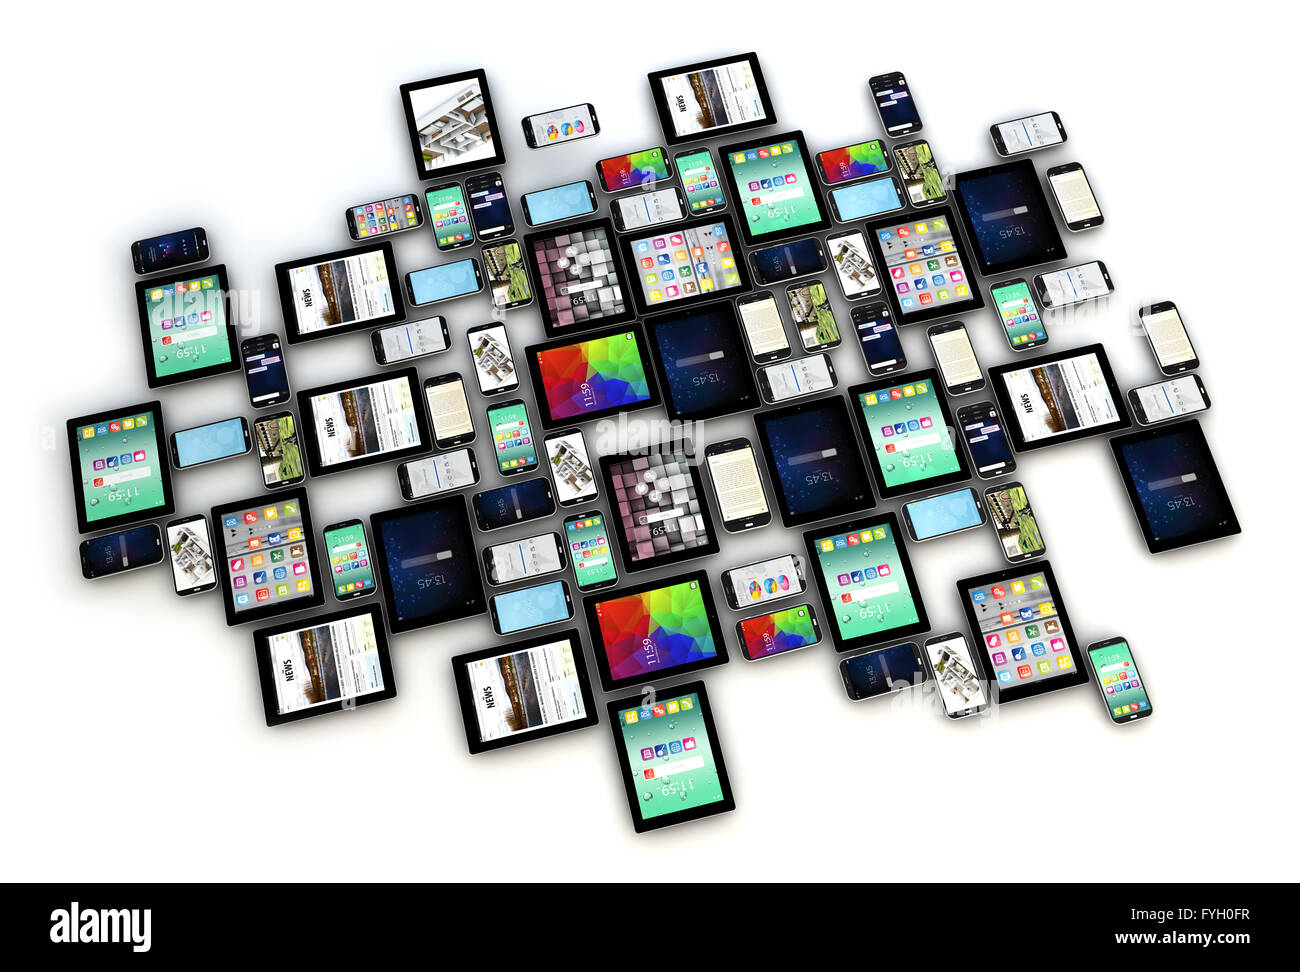 render of a collection of smartphones and tablets with different screens isolated on white background - Stock Image